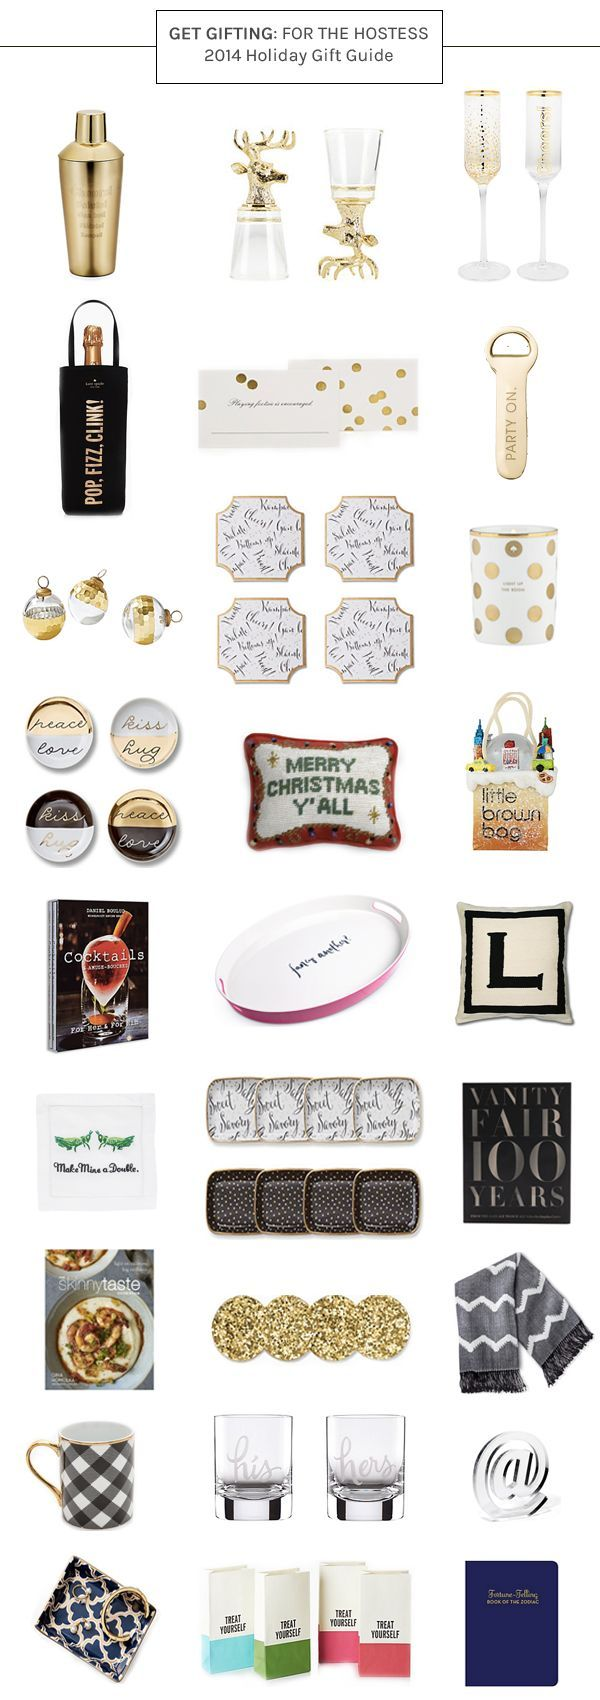 best gifts for me too images on pinterest christmas presents